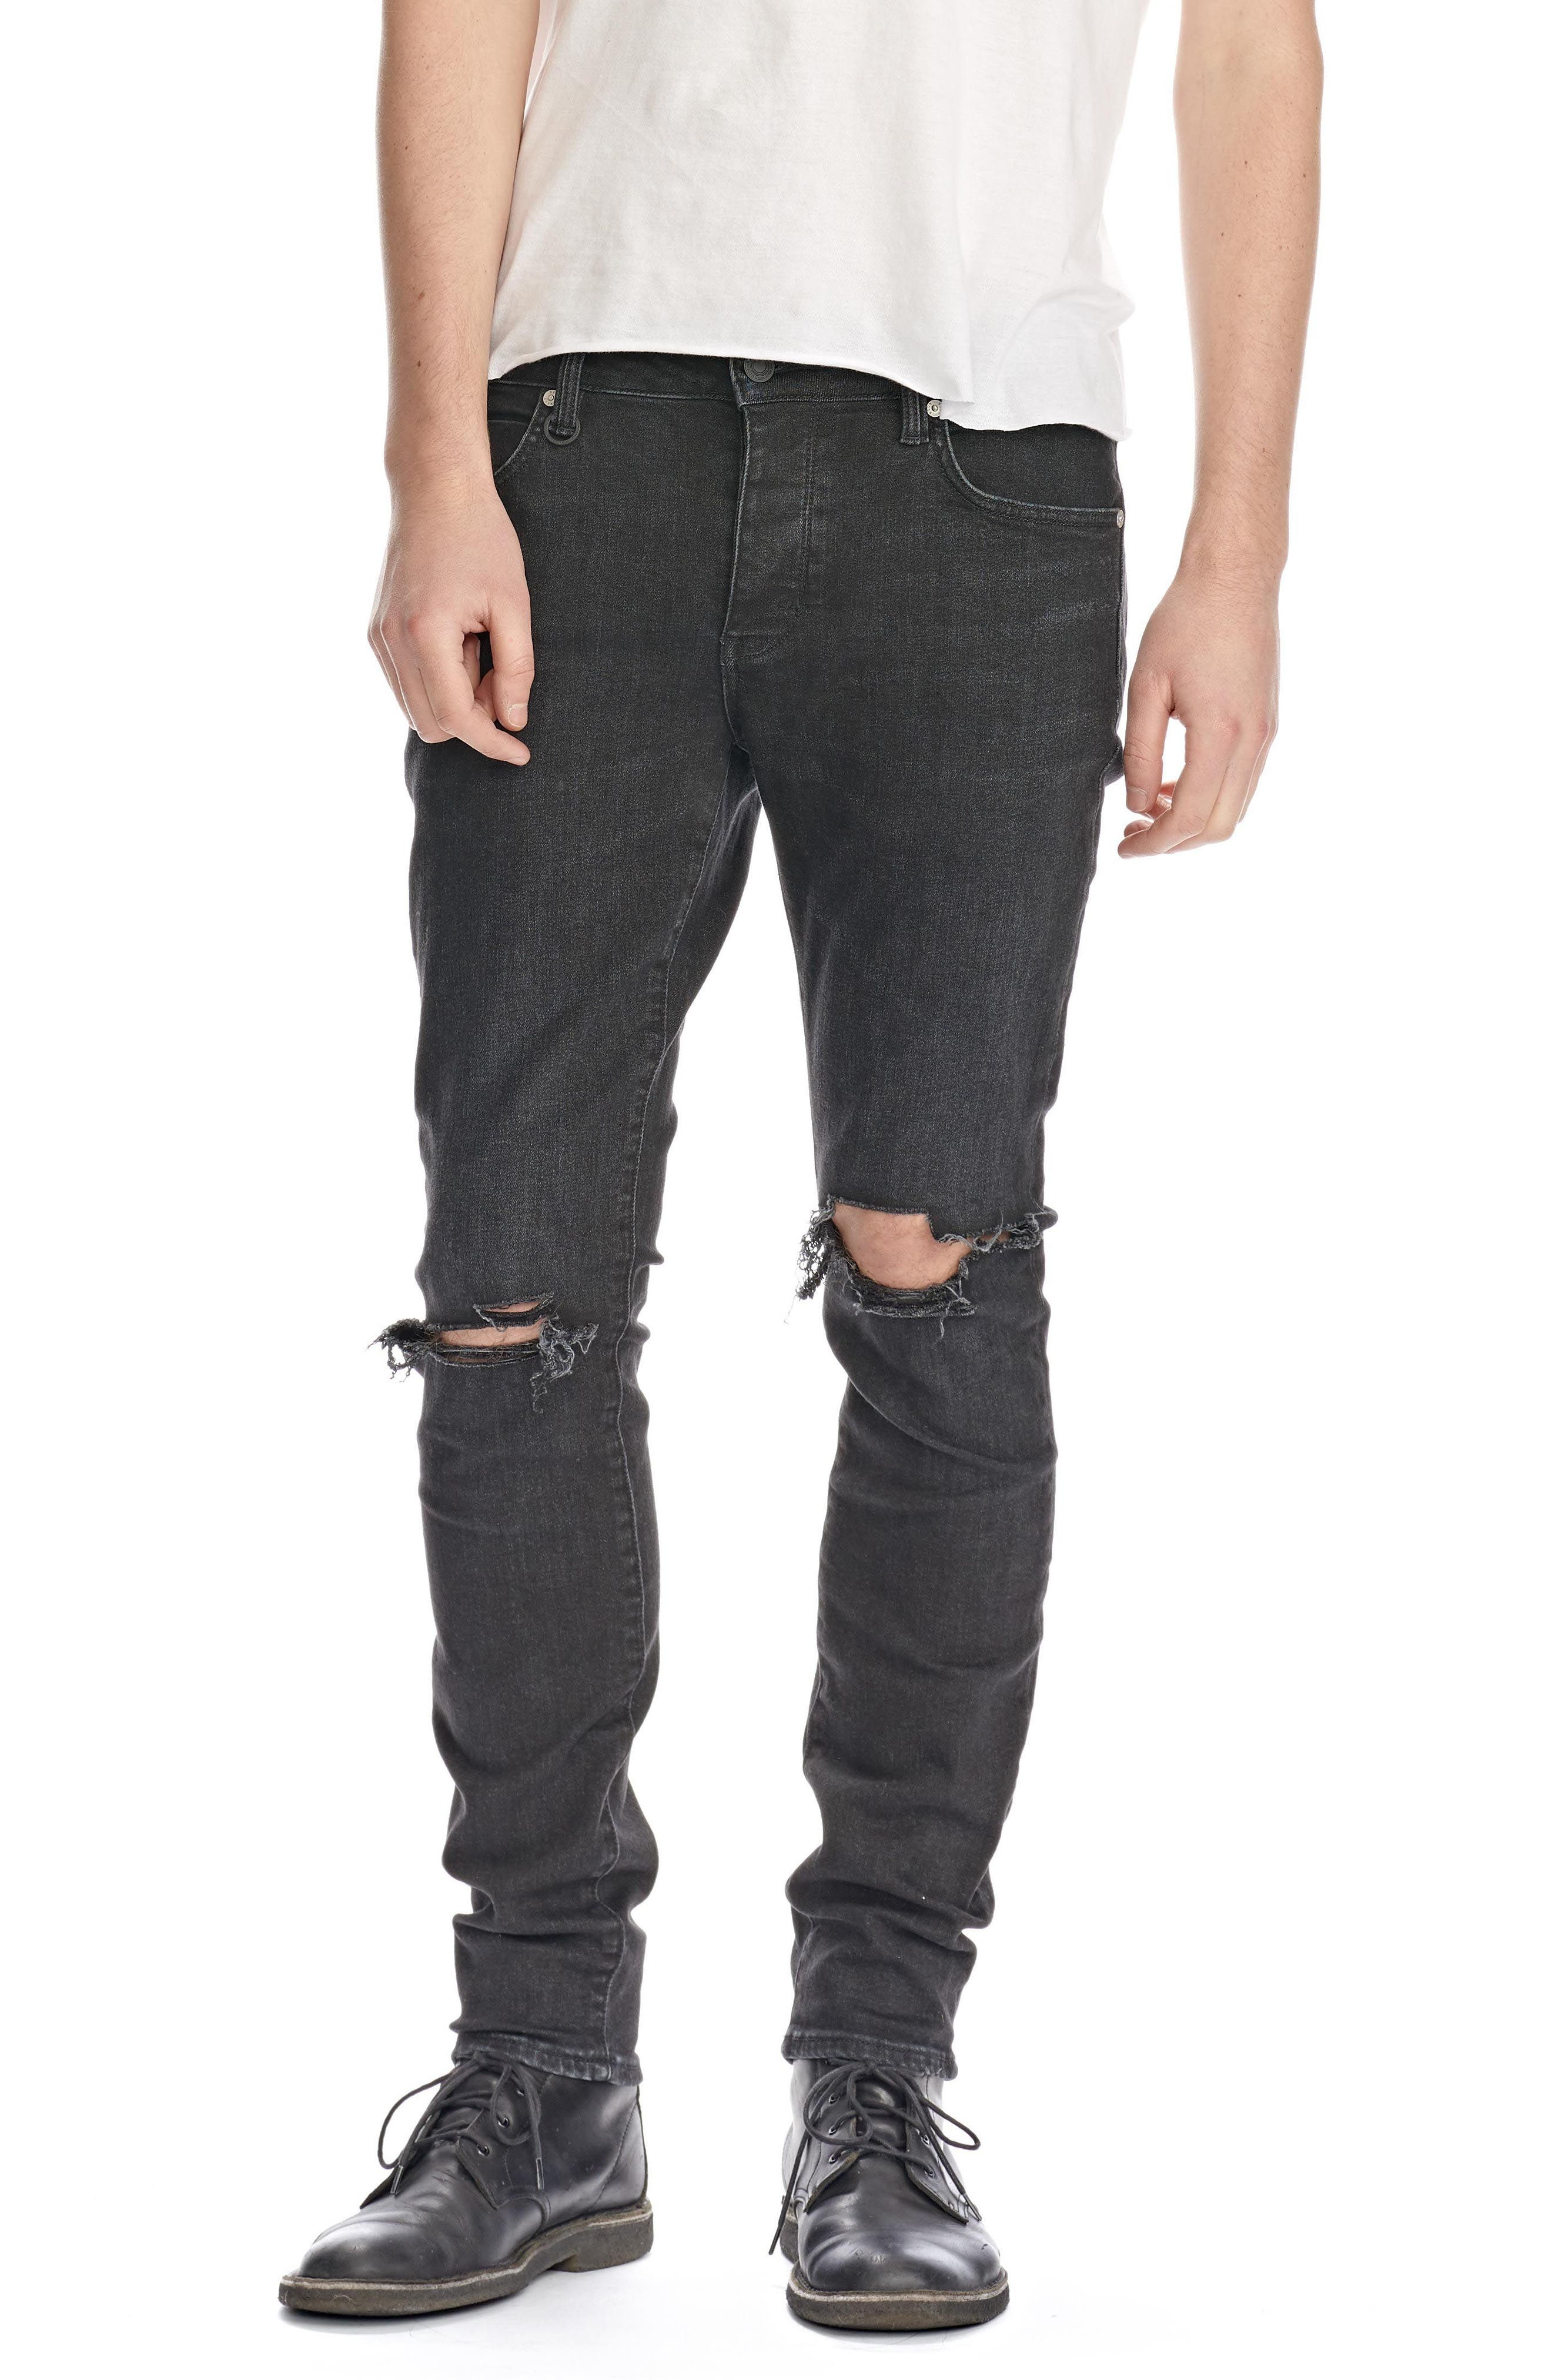 Alternate Image 1 Selected - NEUW Iggy Skinny Fit Jeans (Black Horizon)